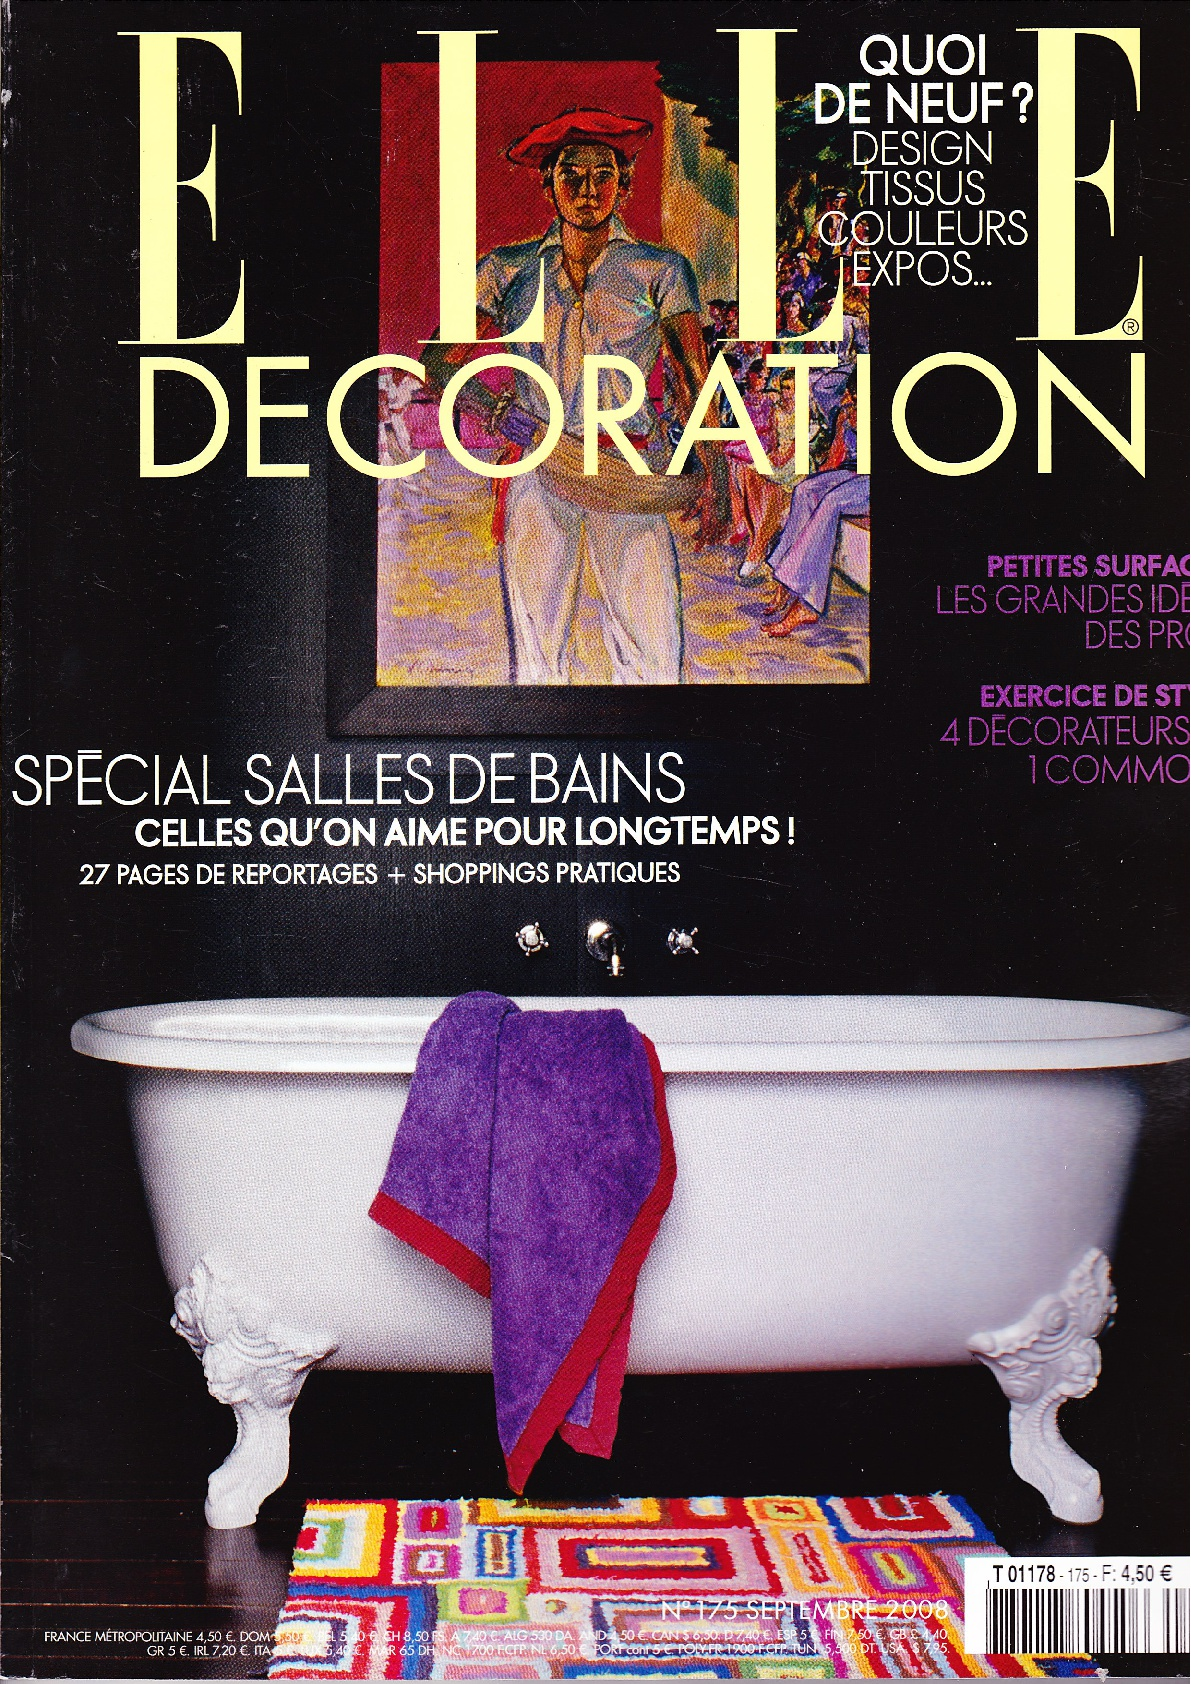 Elle Decoration Sept 2008 1-001